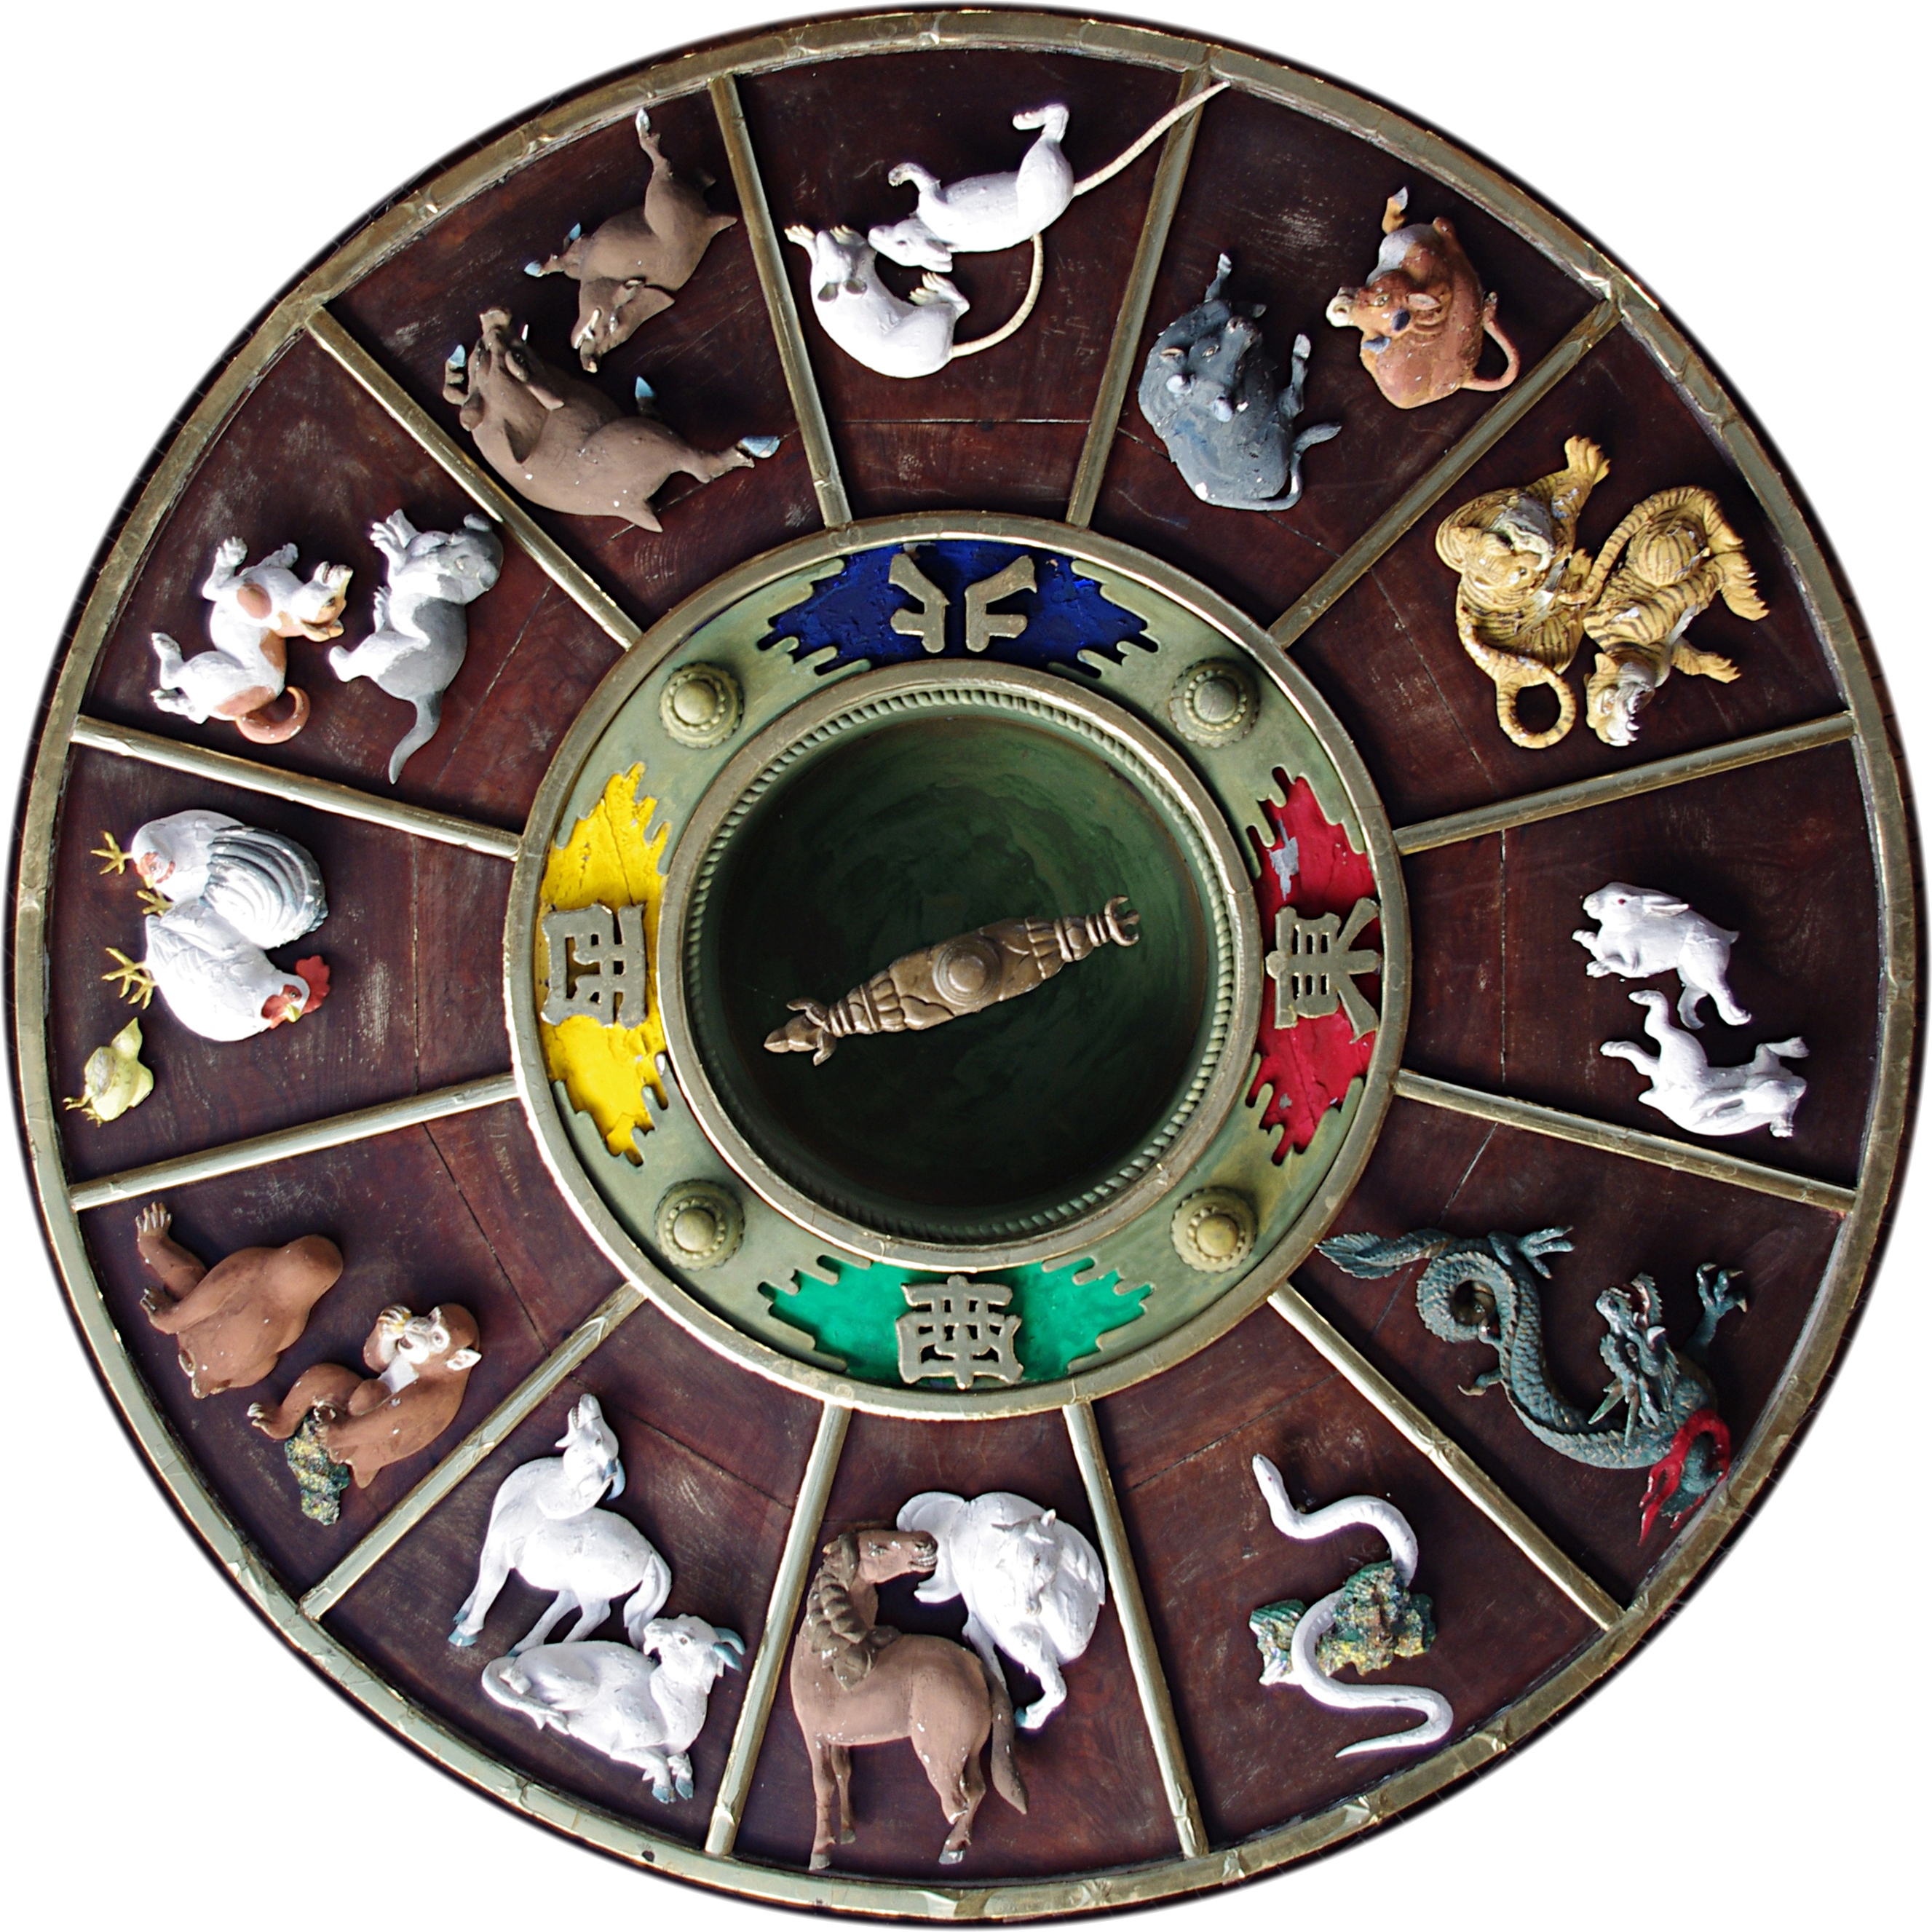 Chinese Zodiac - Wikipedia within What Year Is This According To The Chinese